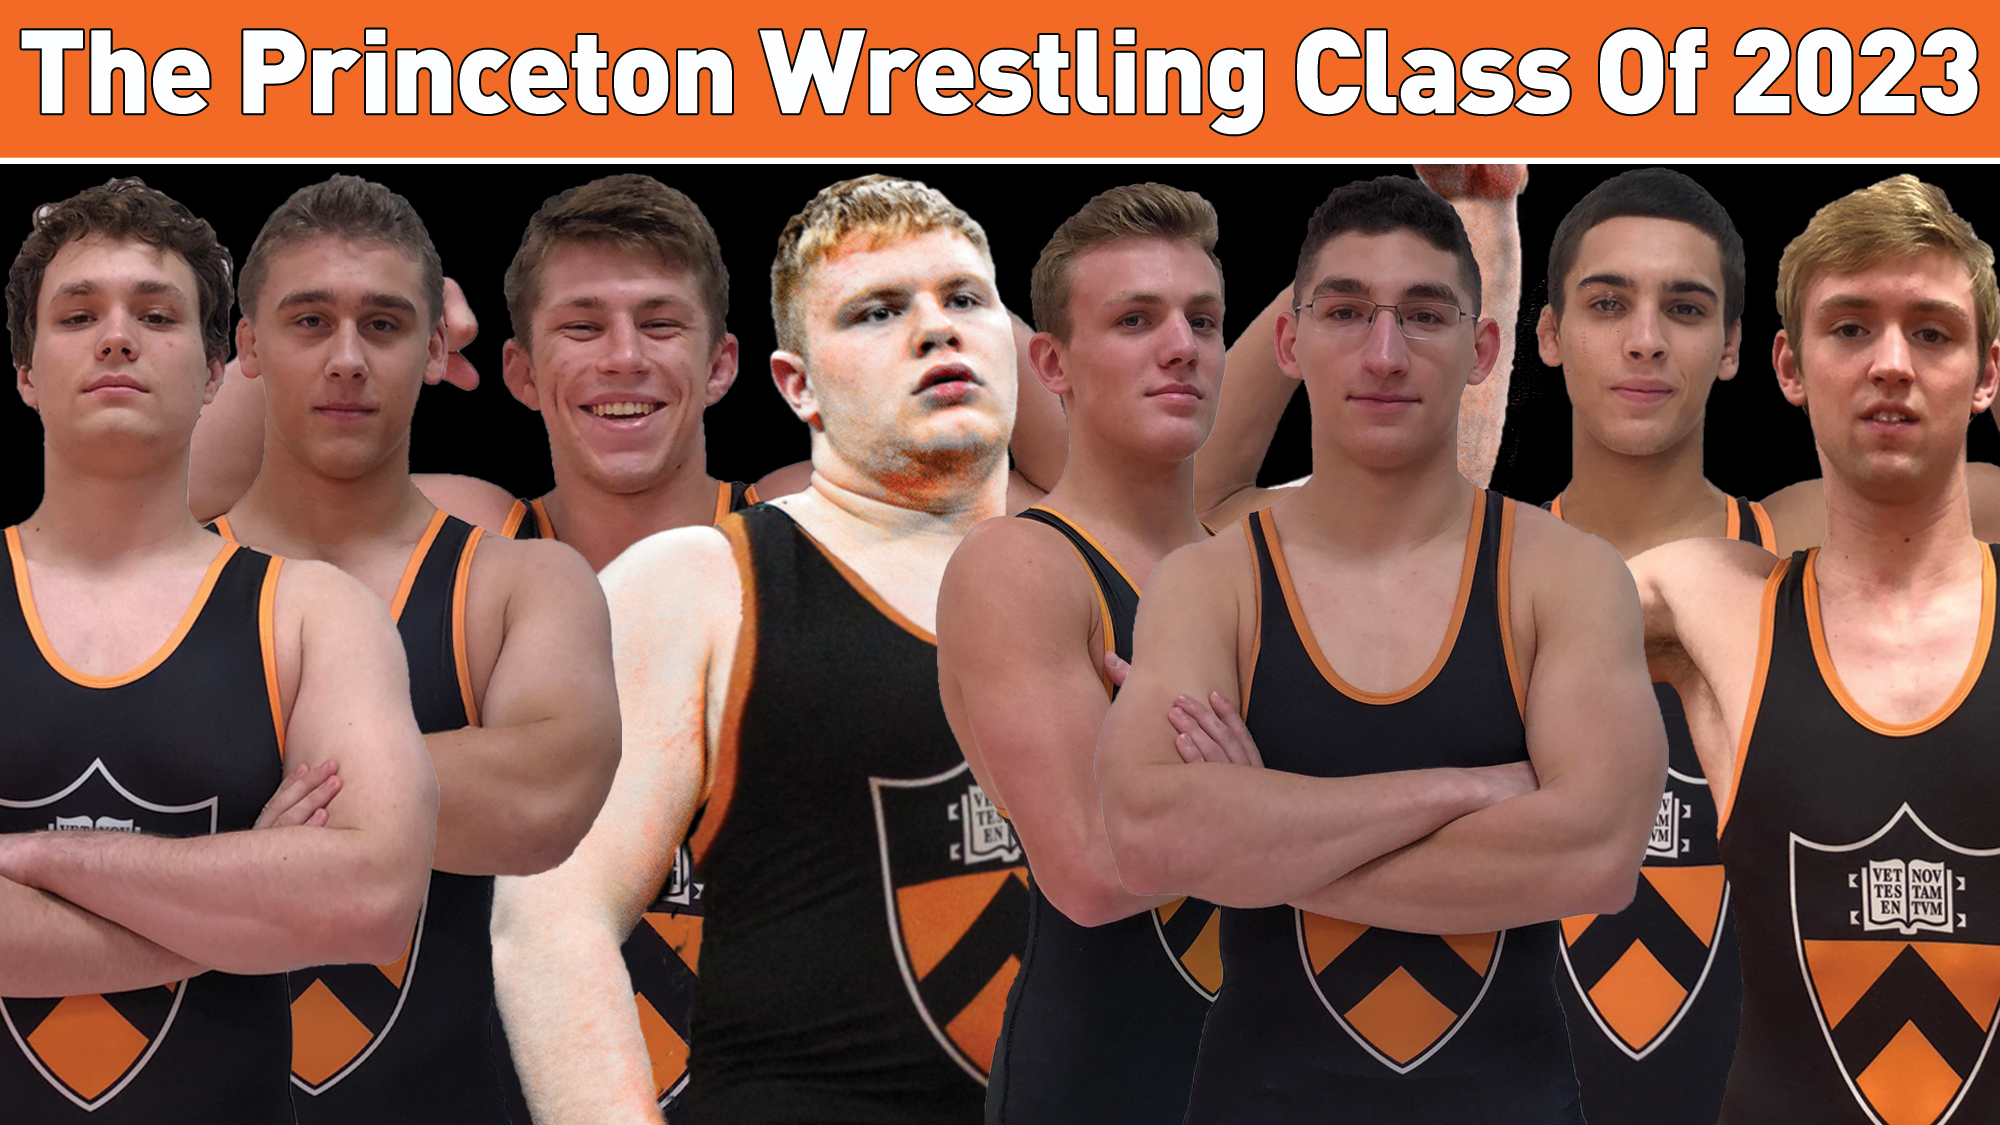 Princeton Wrestling Brings In Another Top-25 Recruiting